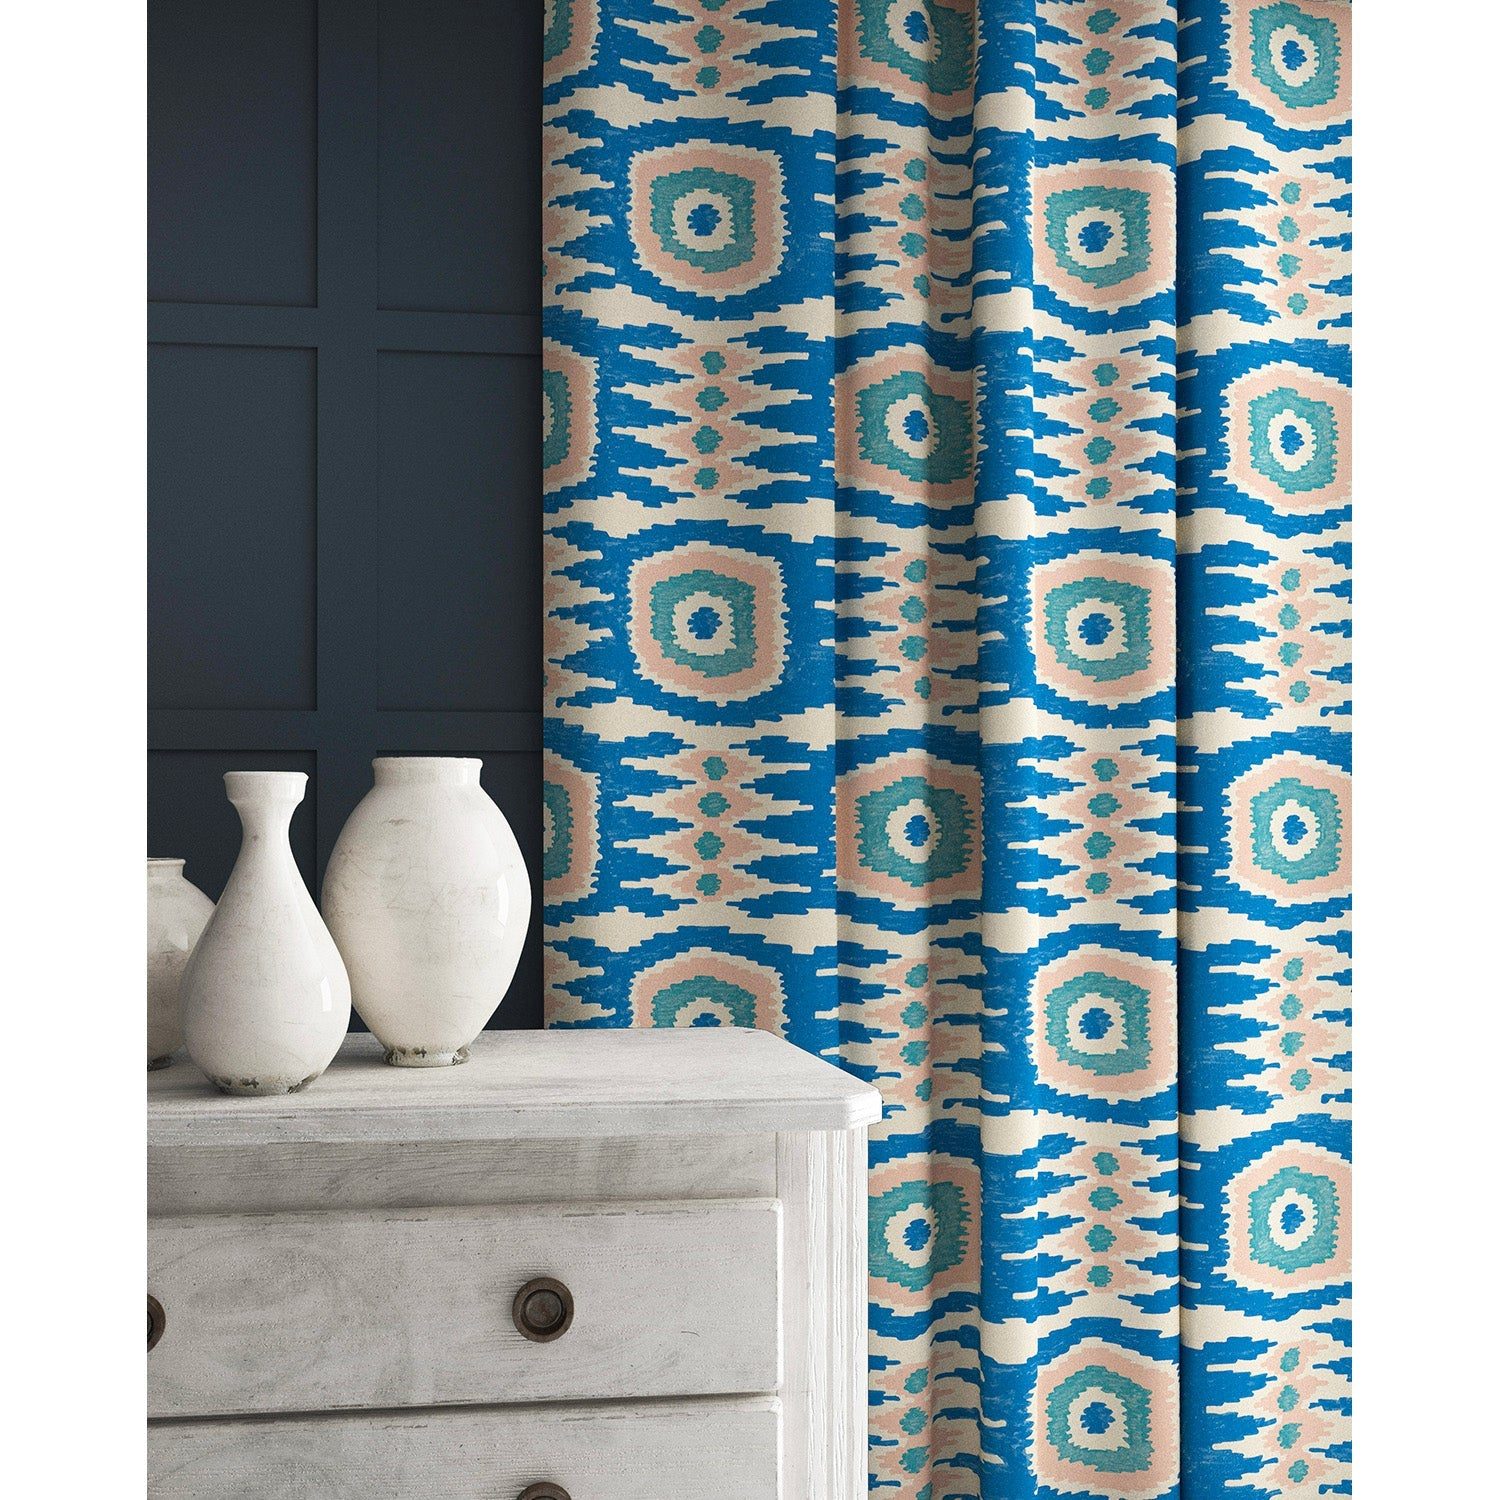 Curtains in a light pink and blue velvet fabric with stain resistant finish and abstract print